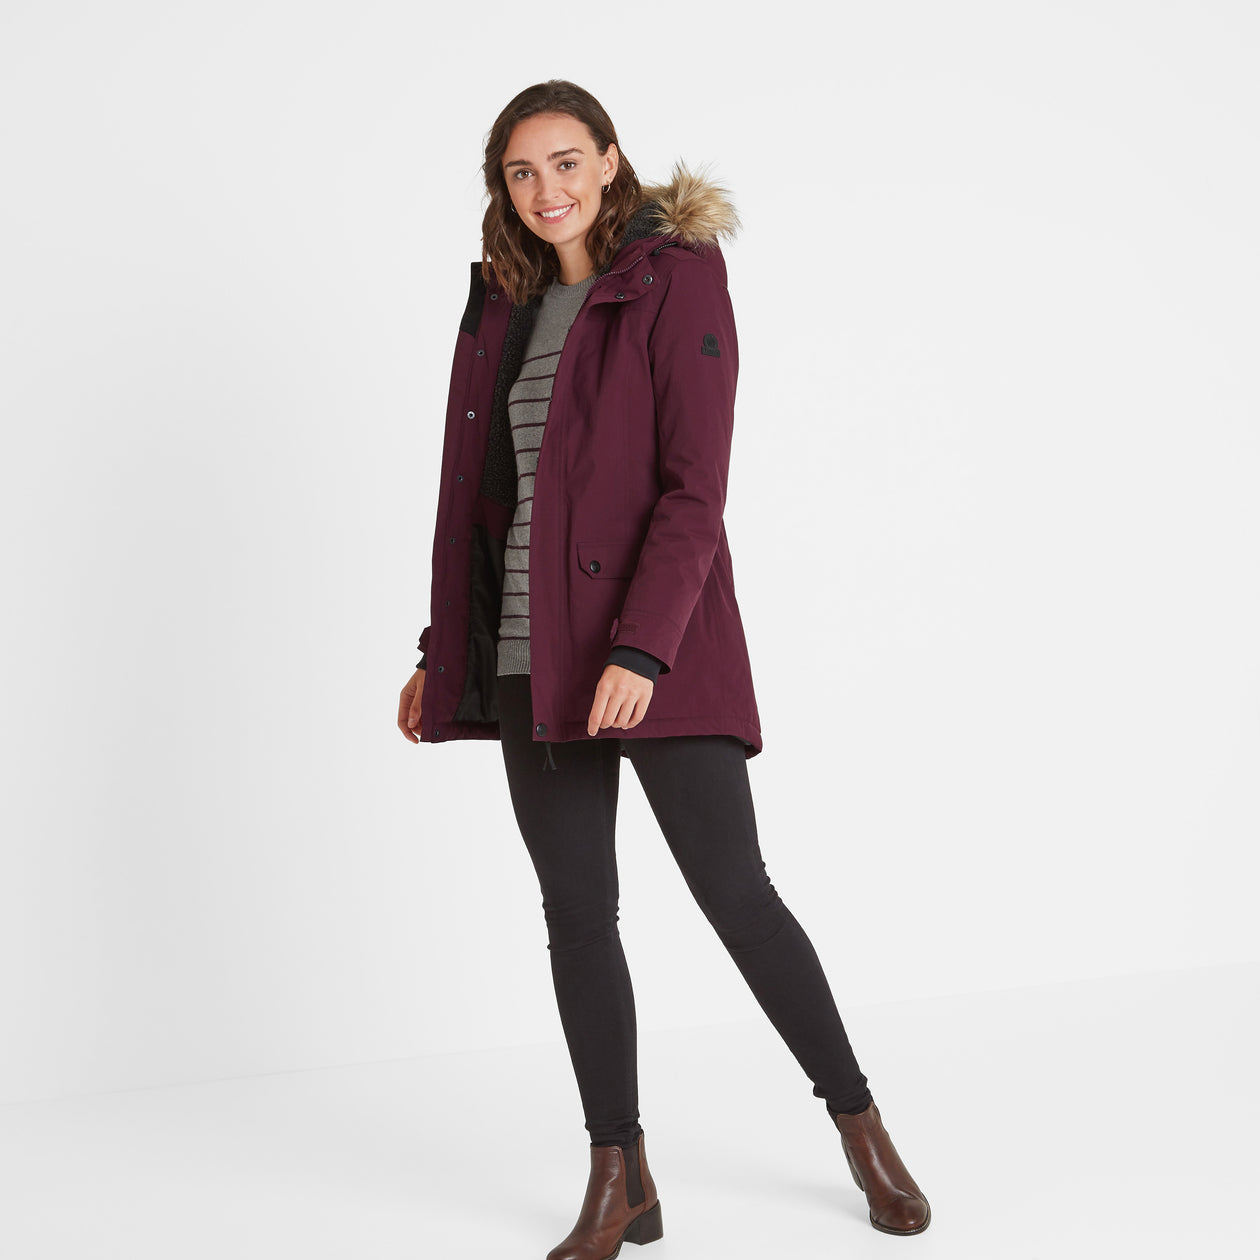 Radial Womens Waterproof Parka Jacket - Aubergine image 4